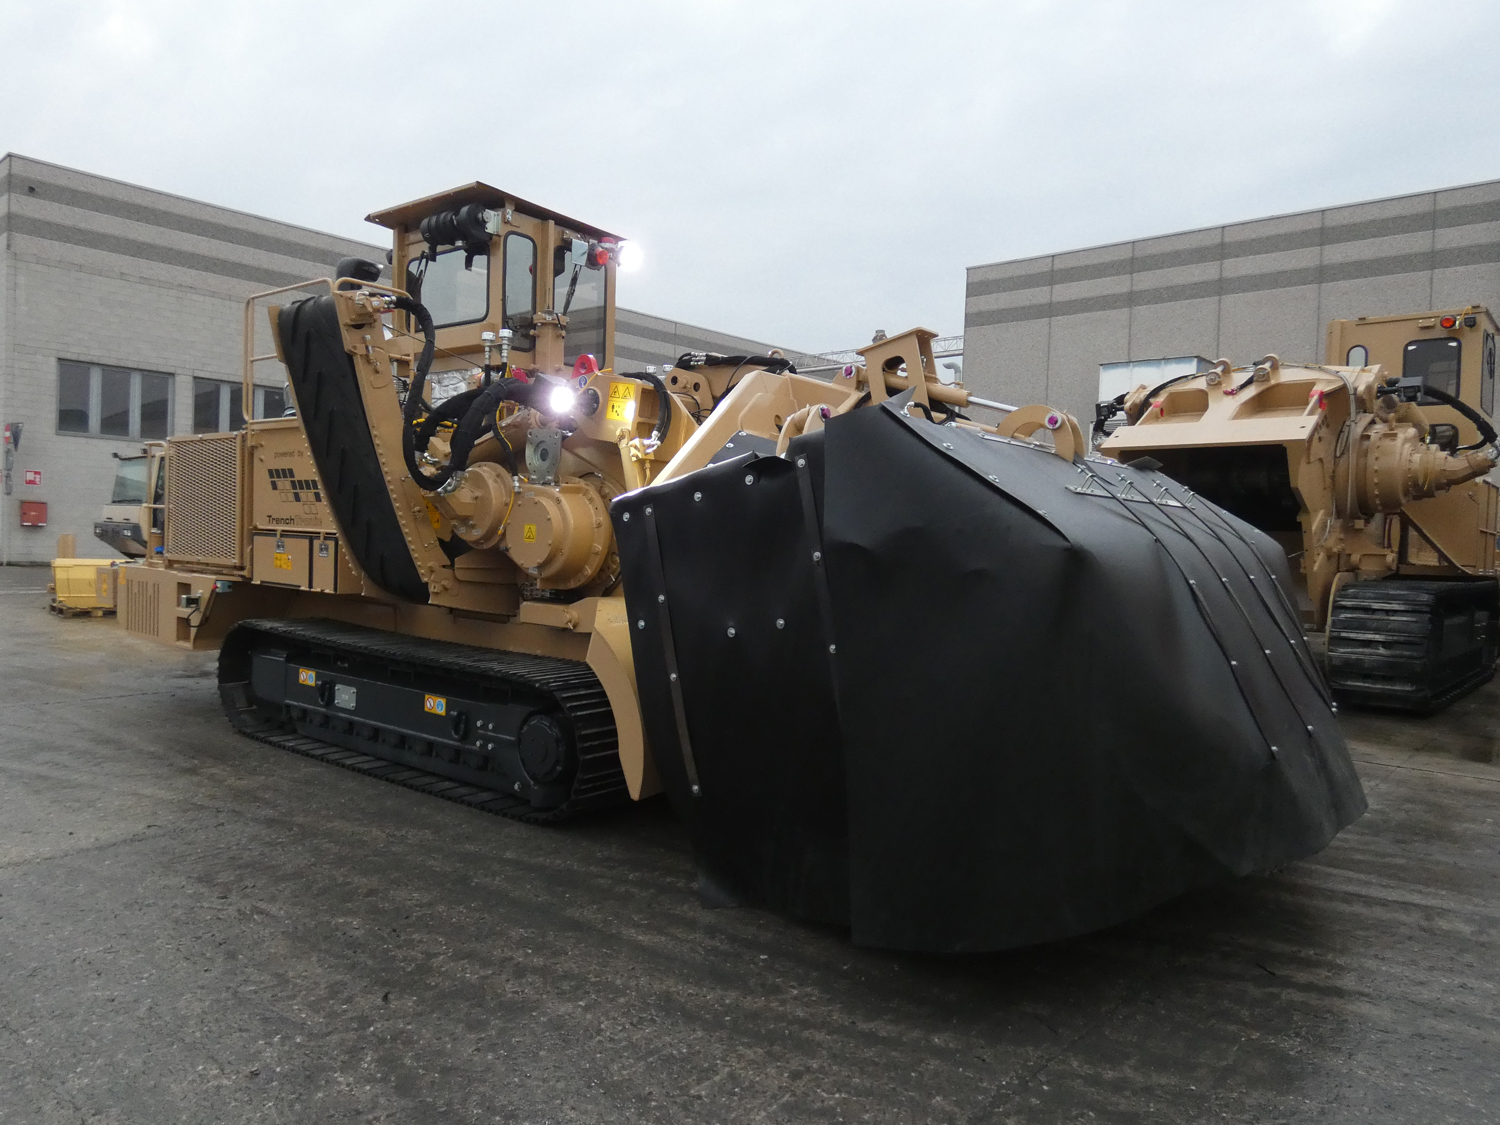 Tesmec 975 EVO Surface Miner for tunnel applications and civil roads works